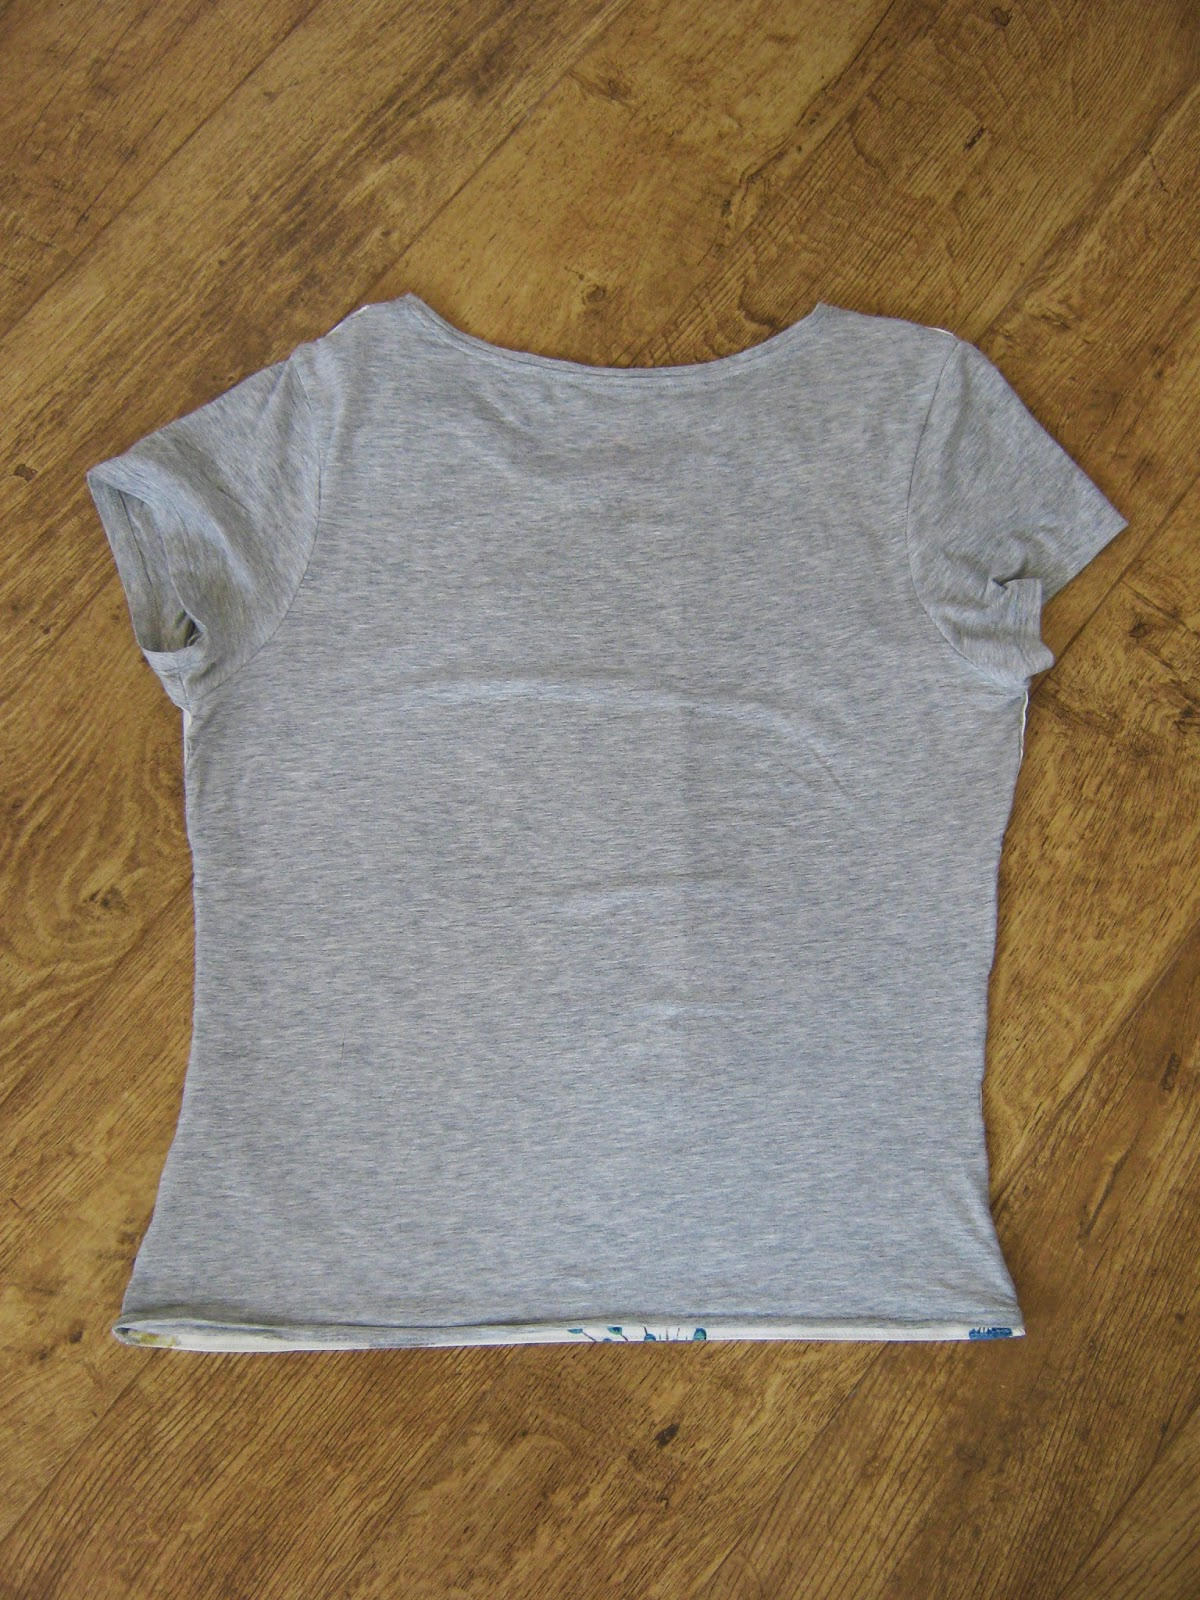 DIY Contrast Panel T-Shirt Hillarys Blinds